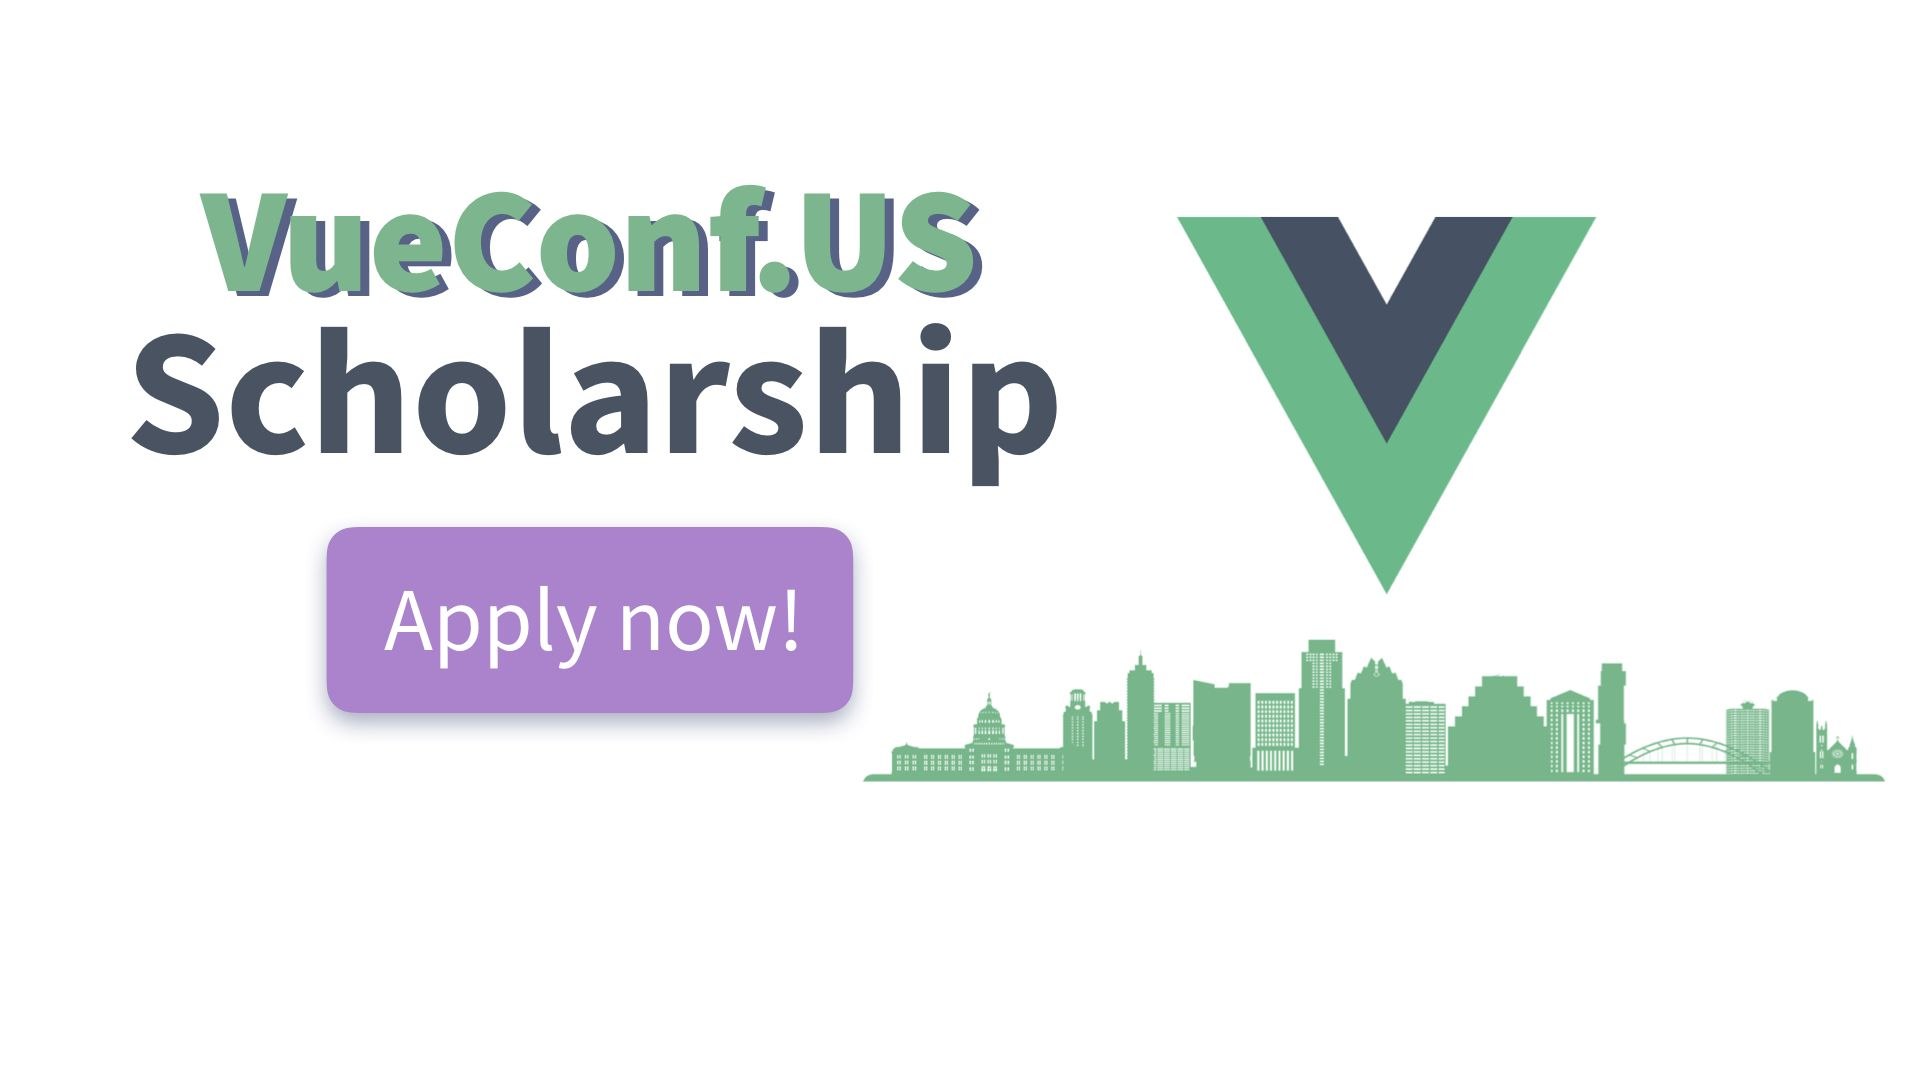 Apply for our VueConf.US Scholarship